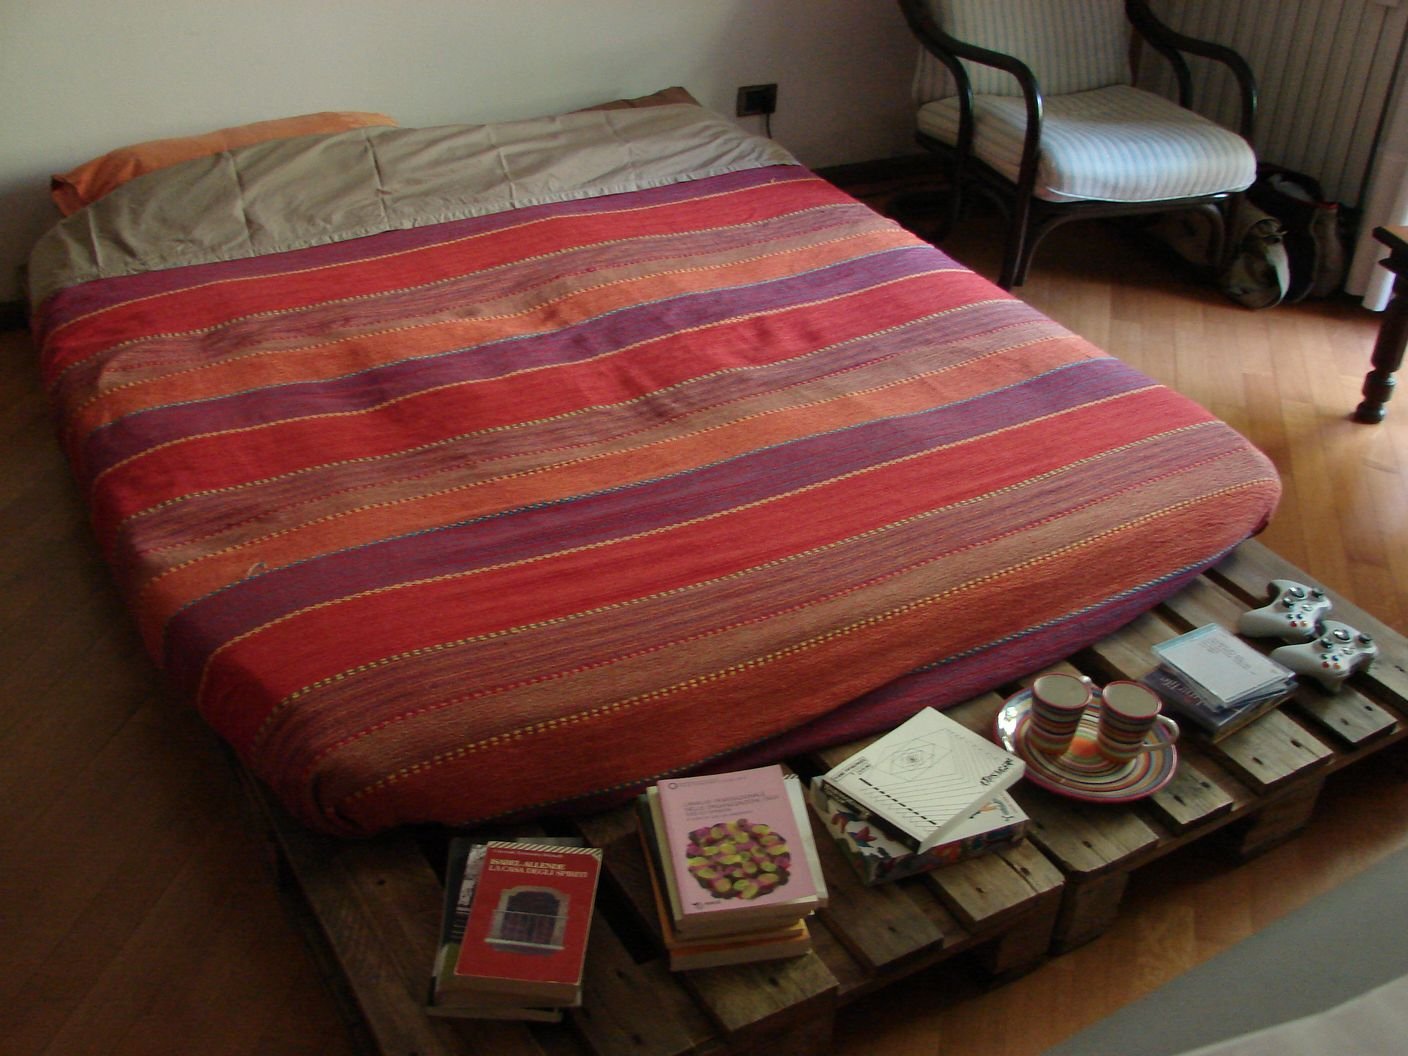 Wearecomplicated letto con pallet bancali - Letto in pallet ...